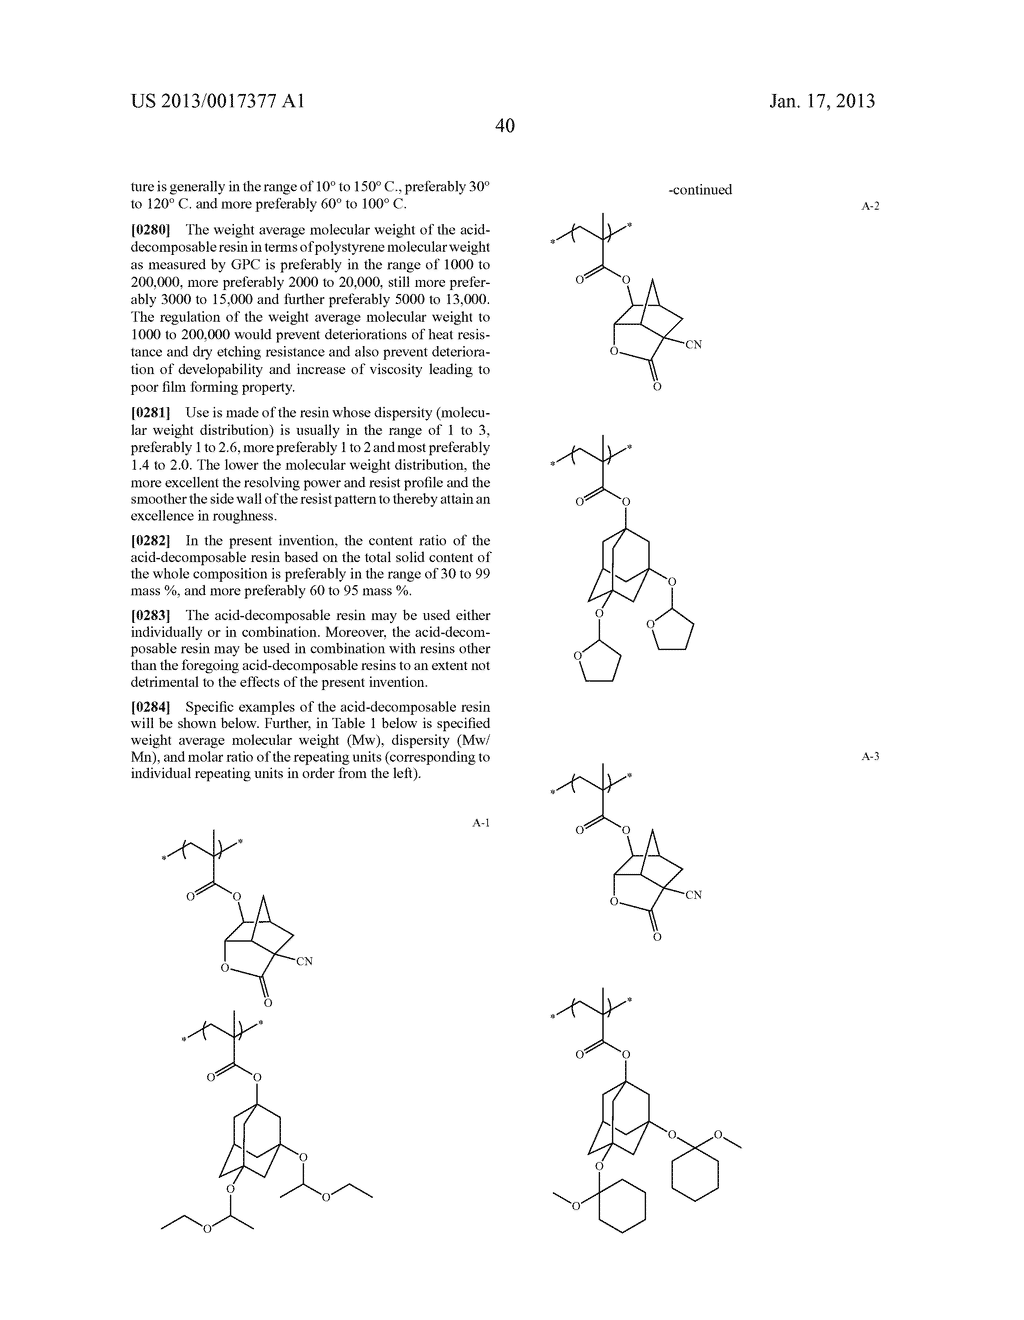 ACTINIC-RAY- OR RADIATION-SENSITIVE RESIN COMPOSITION AND METHOD OF     FORMING PATTERN USING THE SAMEAANM Kataoka; ShoheiAACI ShizuokaAACO JPAAGP Kataoka; Shohei Shizuoka JPAANM Iwato; KaoruAACI ShizuokaAACO JPAAGP Iwato; Kaoru Shizuoka JPAANM Kamimura; SouAACI ShizuokaAACO JPAAGP Kamimura; Sou Shizuoka JPAANM Tsuchihashi; ToruAACI ShizuokaAACO JPAAGP Tsuchihashi; Toru Shizuoka JPAANM Enomoto; YuichiroAACI ShizuokaAACO JPAAGP Enomoto; Yuichiro Shizuoka JPAANM Fujii; KanaAACI ShizuokaAACO JPAAGP Fujii; Kana Shizuoka JPAANM Mizutani; KazuyoshiAACI ShizuokaAACO JPAAGP Mizutani; Kazuyoshi Shizuoka JPAANM Tarutani; ShinjiAACI ShizuokaAACO JPAAGP Tarutani; Shinji Shizuoka JPAANM Kato; KeitaAACI ShizuokaAACO JPAAGP Kato; Keita Shizuoka JP - diagram, schematic, and image 41